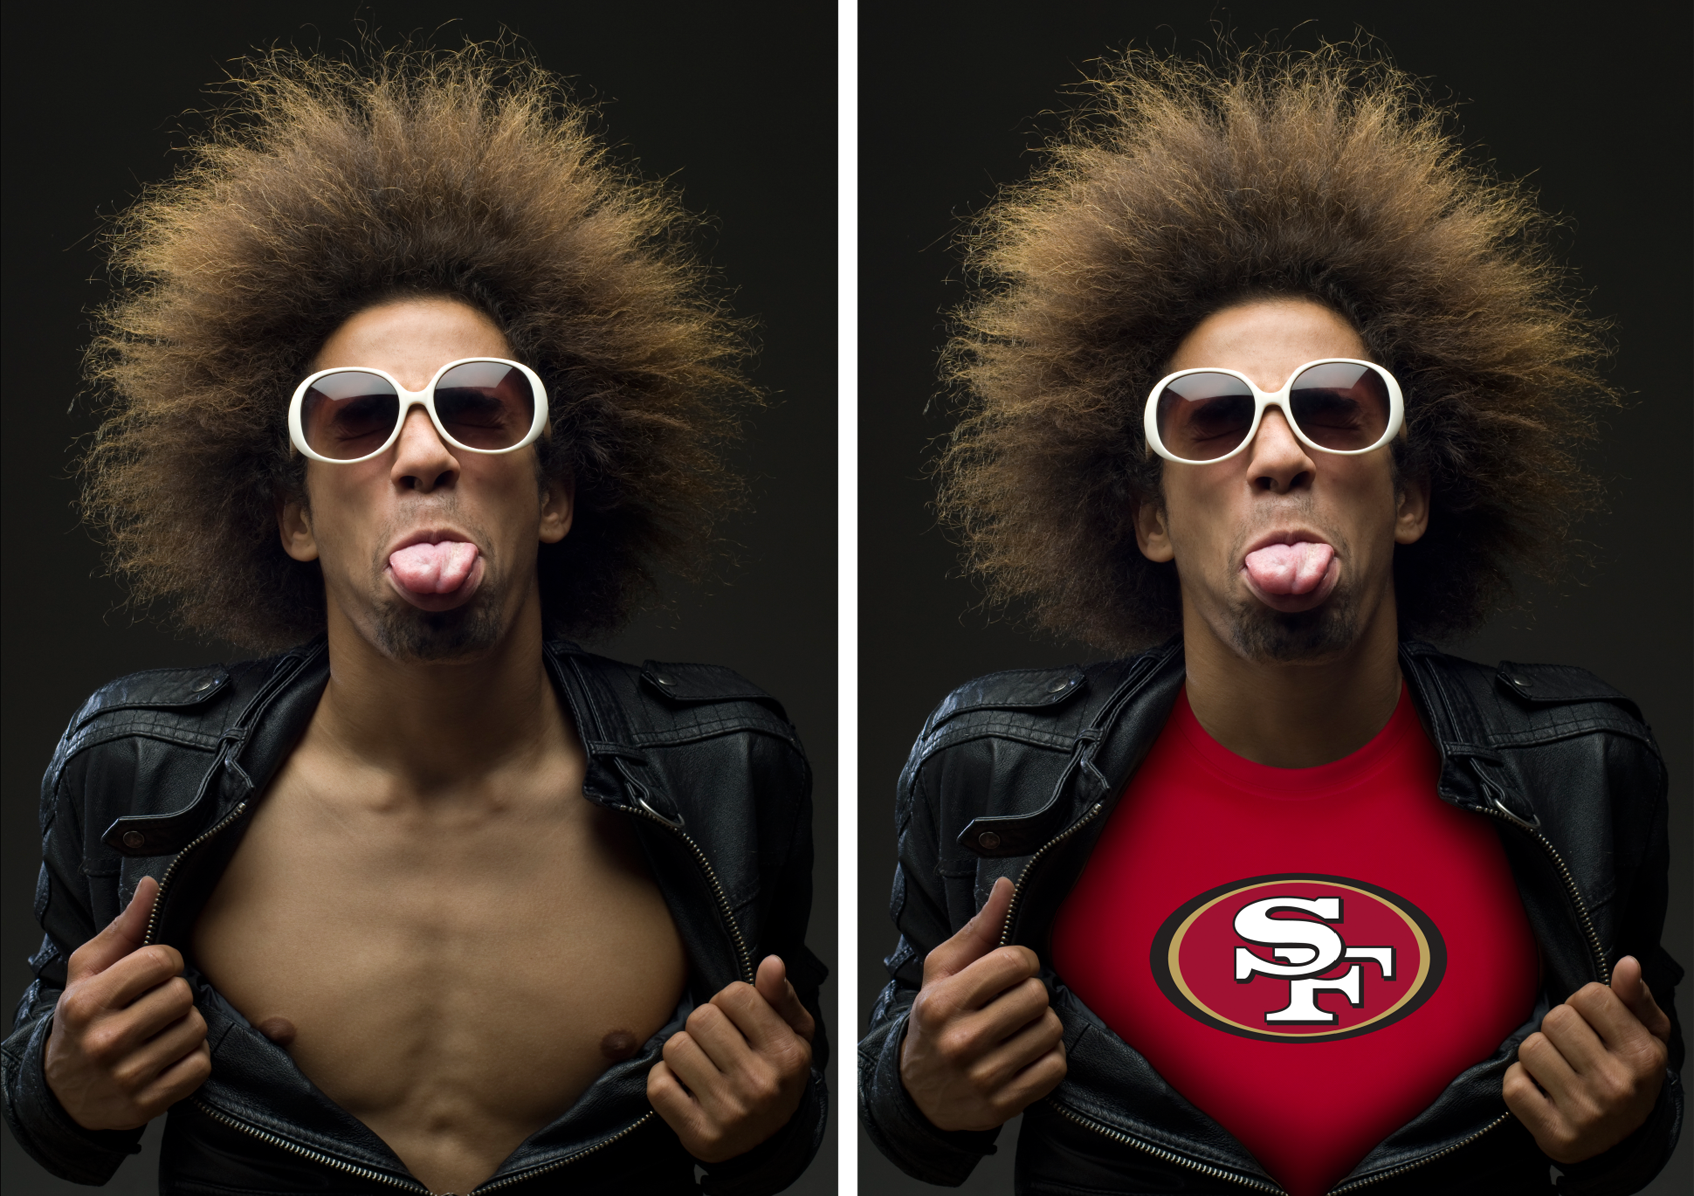 From Shirtless to 49er Fan